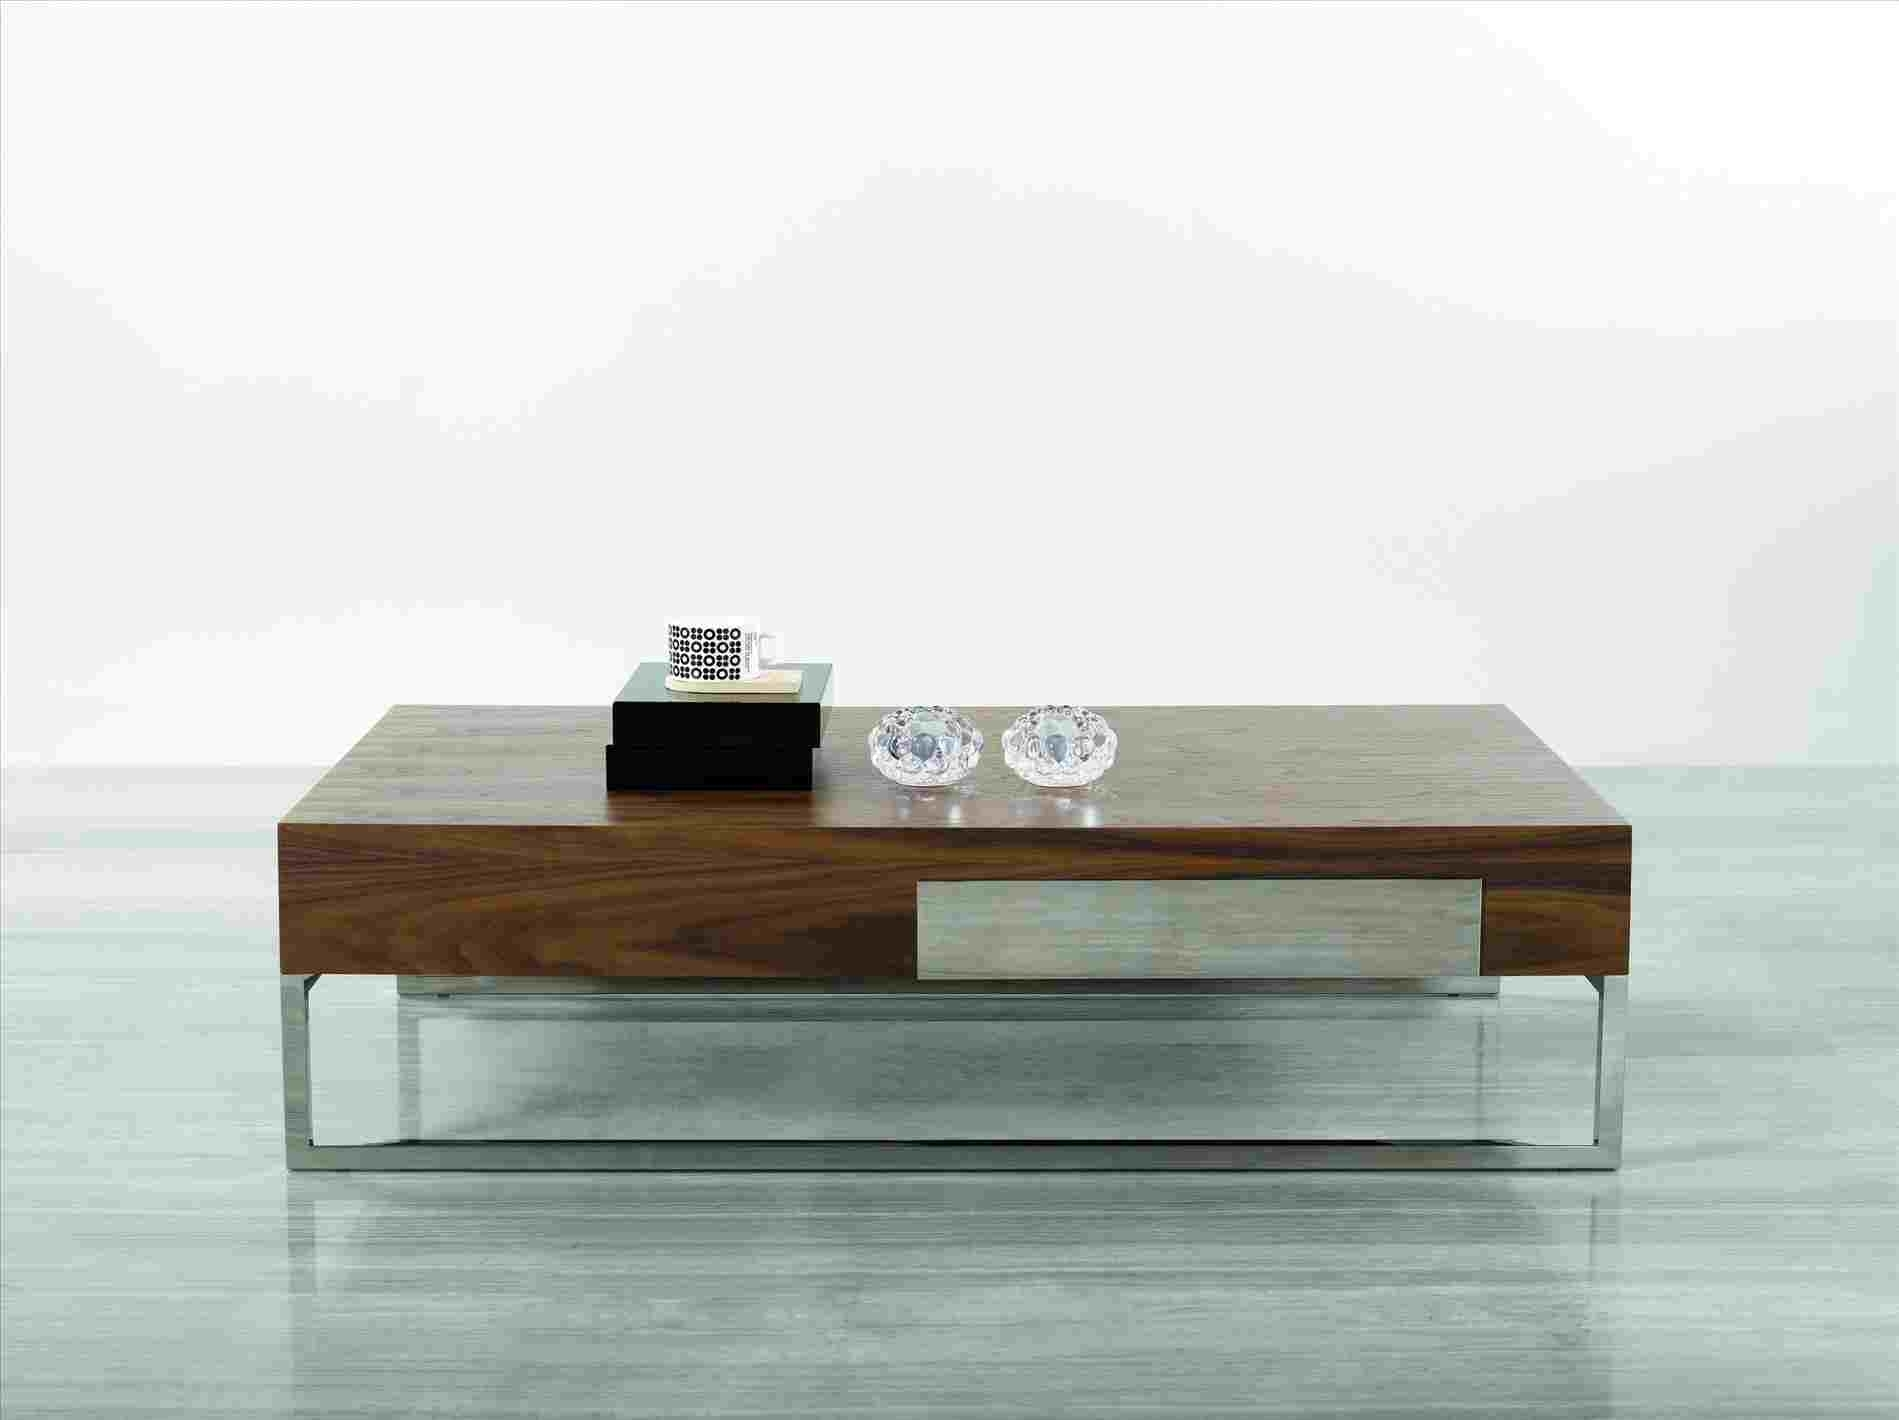 Diy Minimalist Coffee Table | Diy Furniture inside Minimalist Coffee Tables (Image 3 of 30)